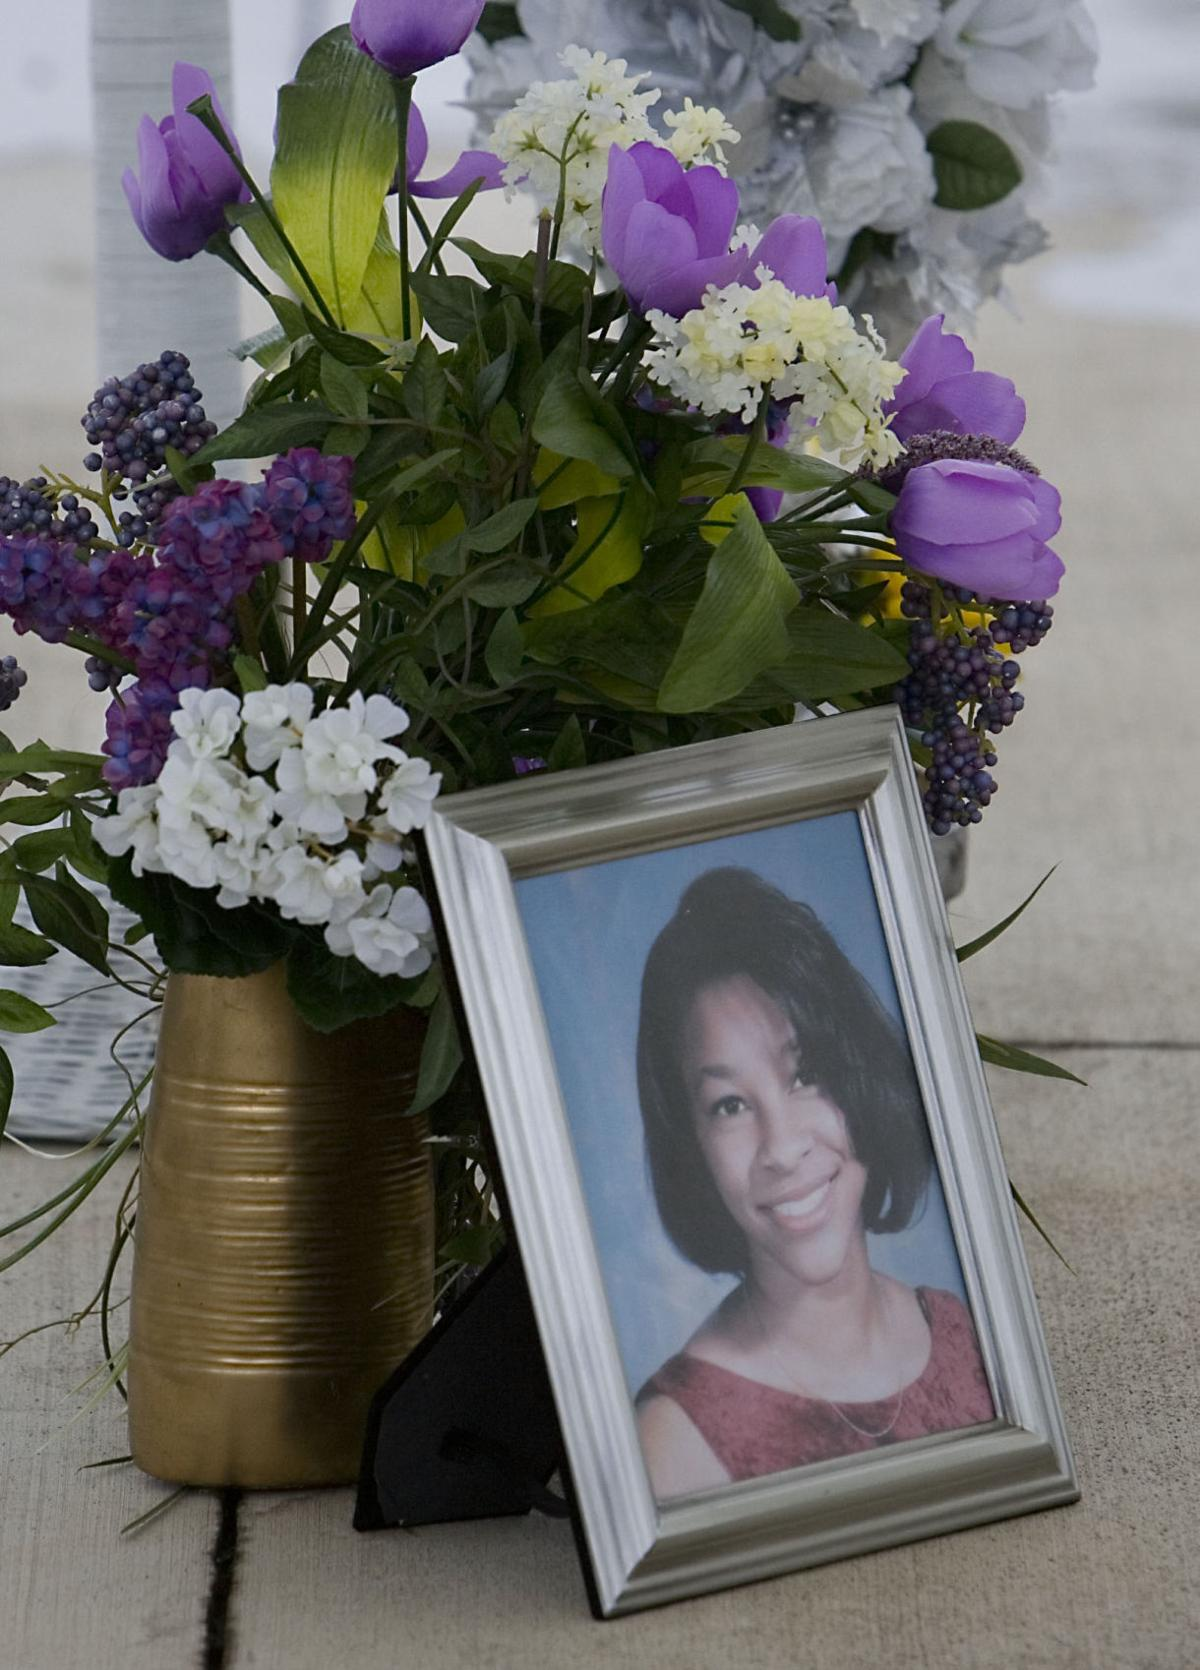 Friends of Sherri Denese Jackson fight for domestic violence victims in her name